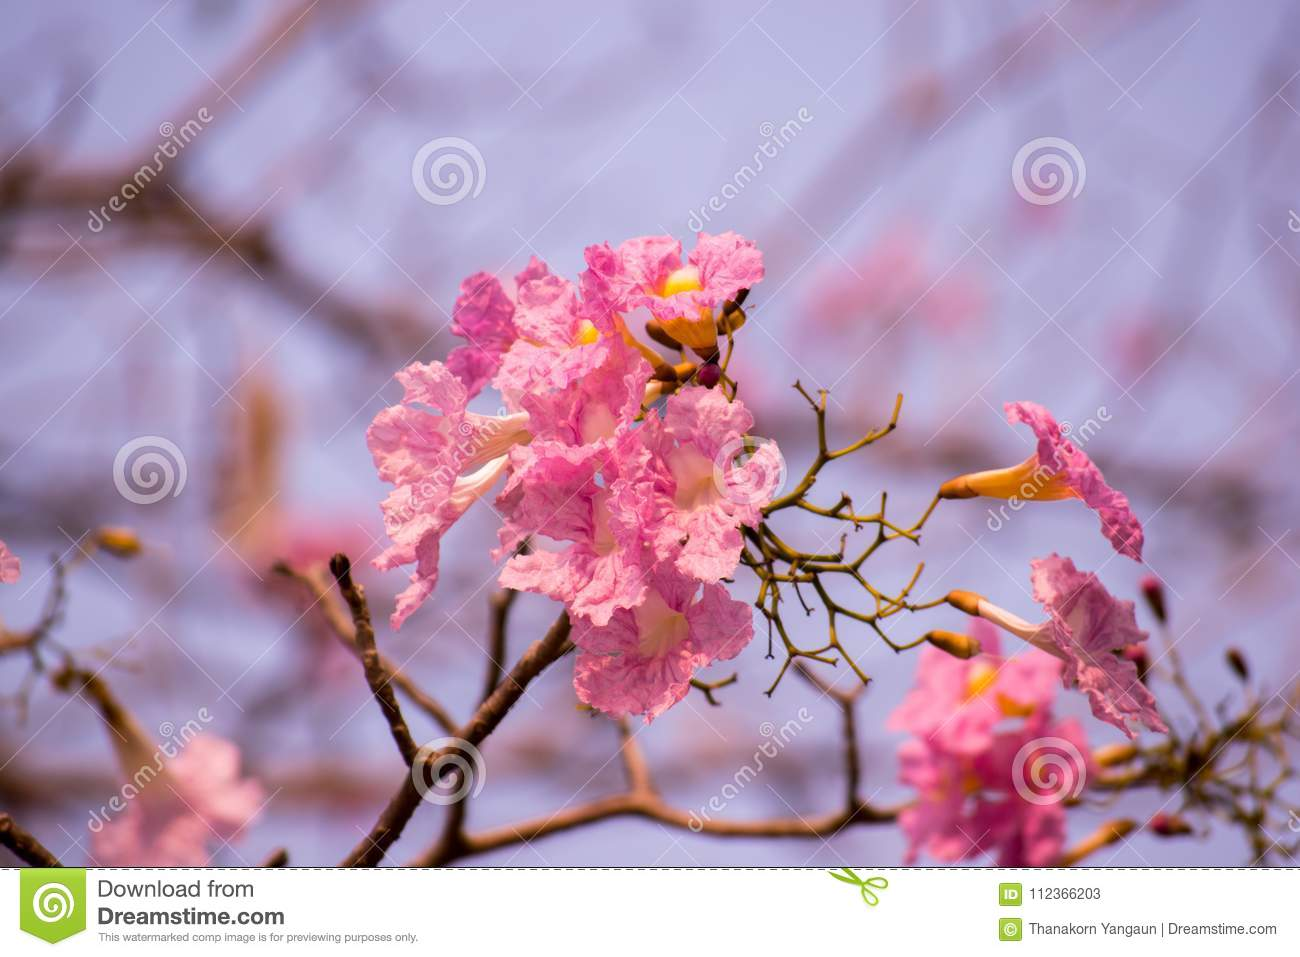 Tabebuia Rosea Or Pink Trumpet Flowers Growing Up In The Local Park